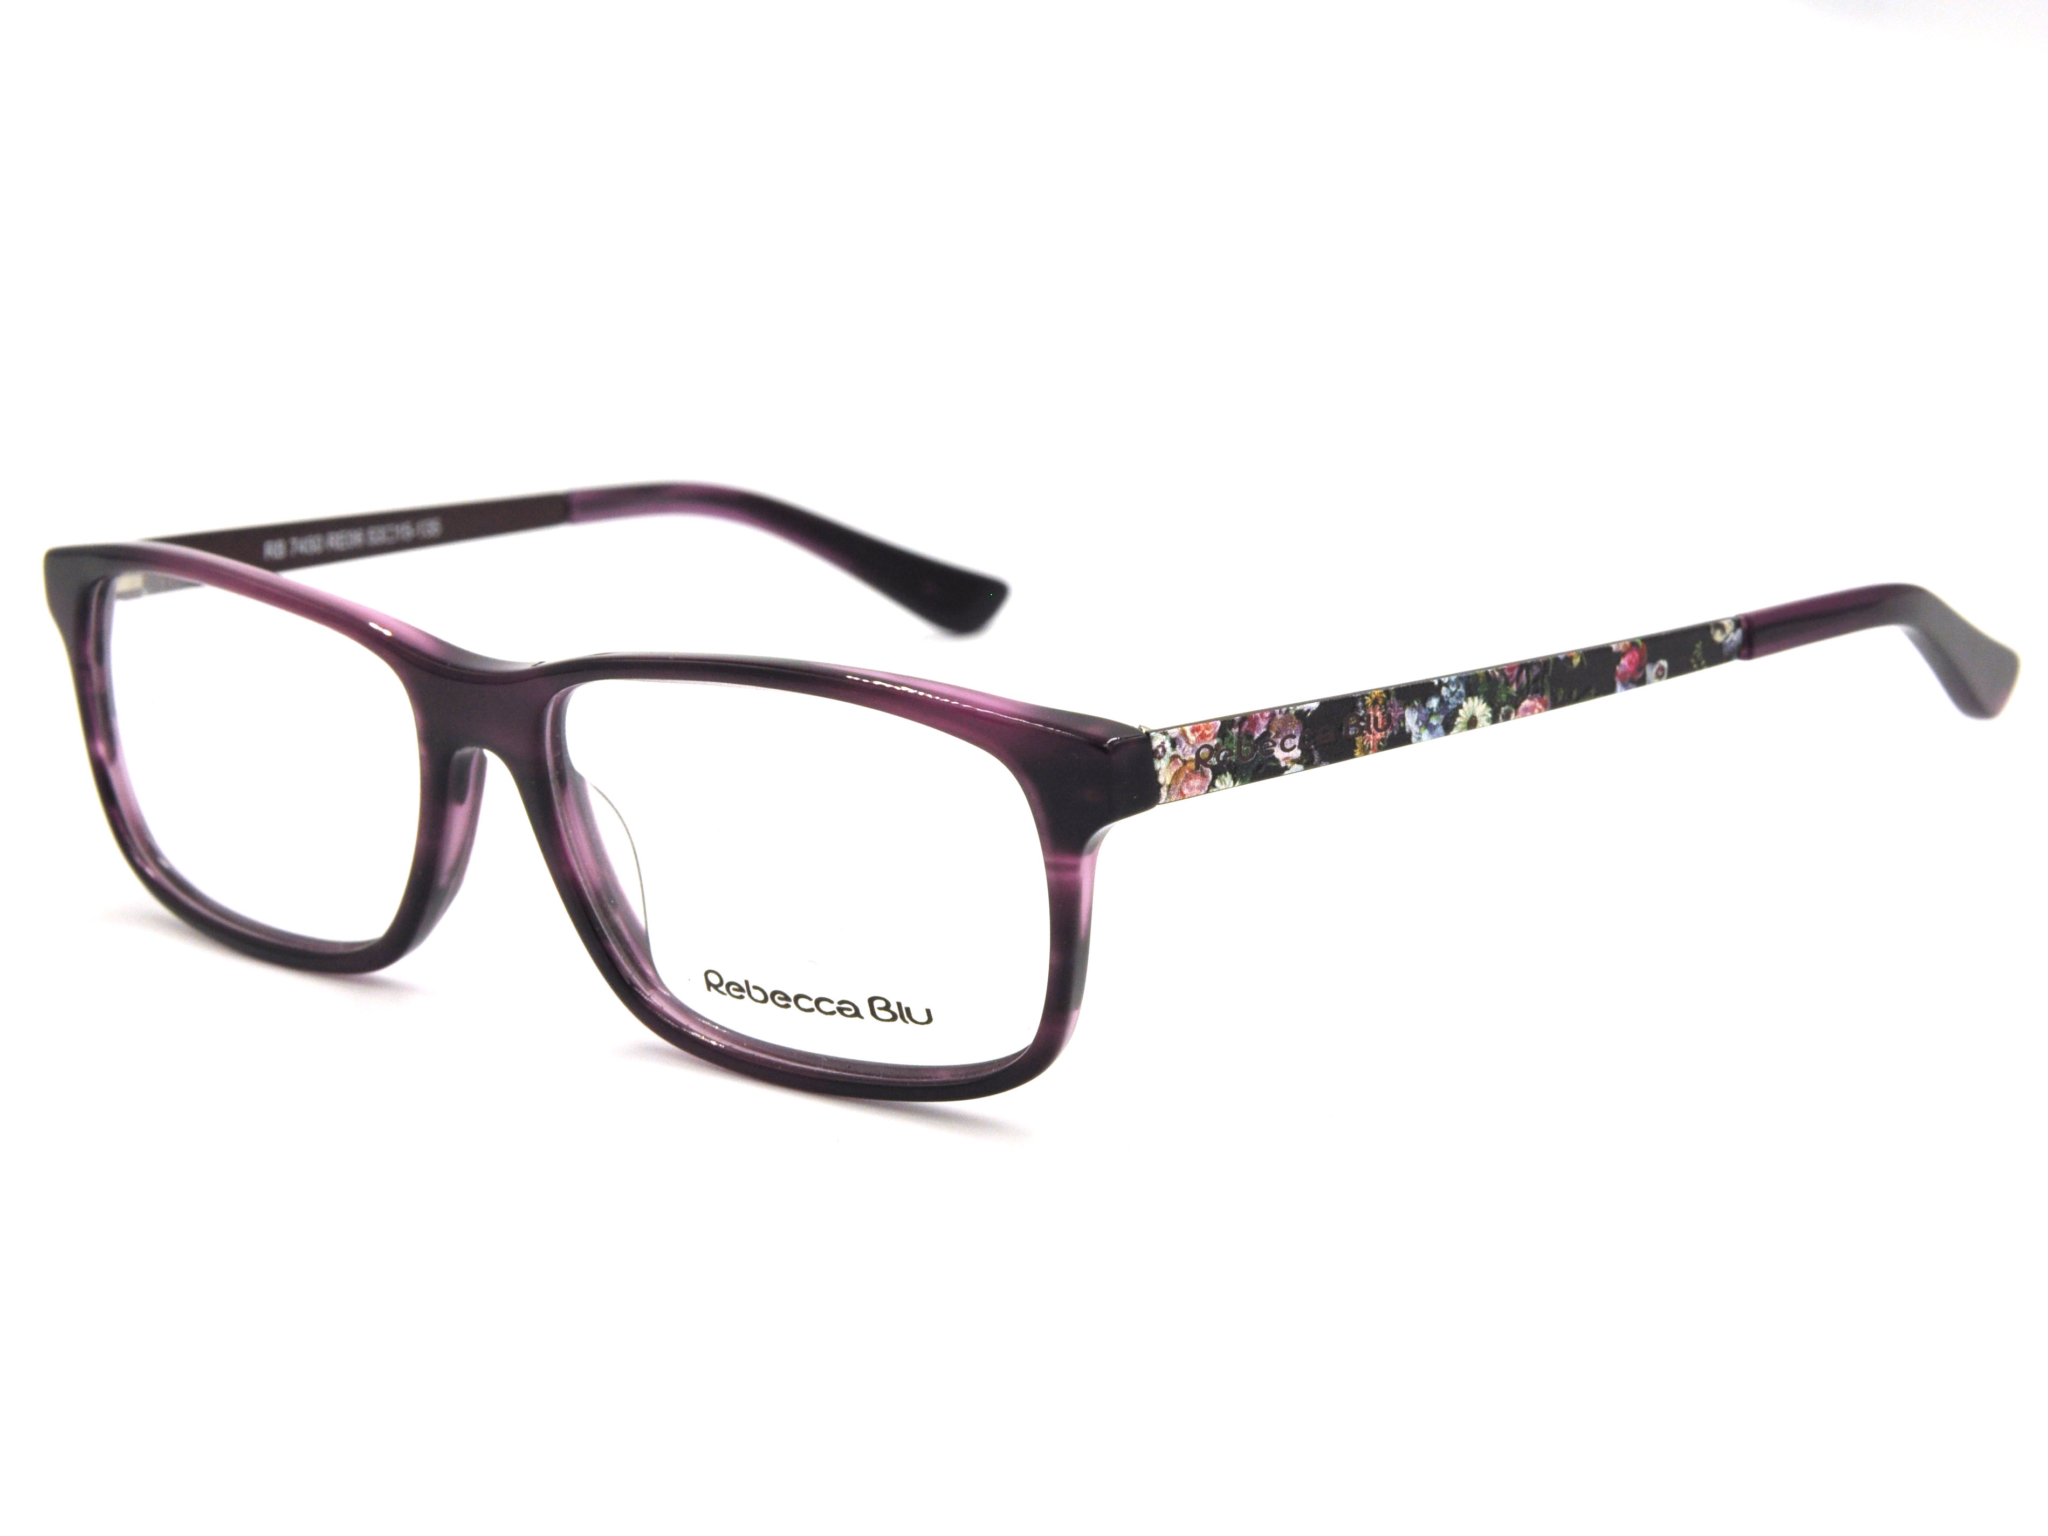 REBECCA BLU RB7450 RE06 Prescription Glasses 2020